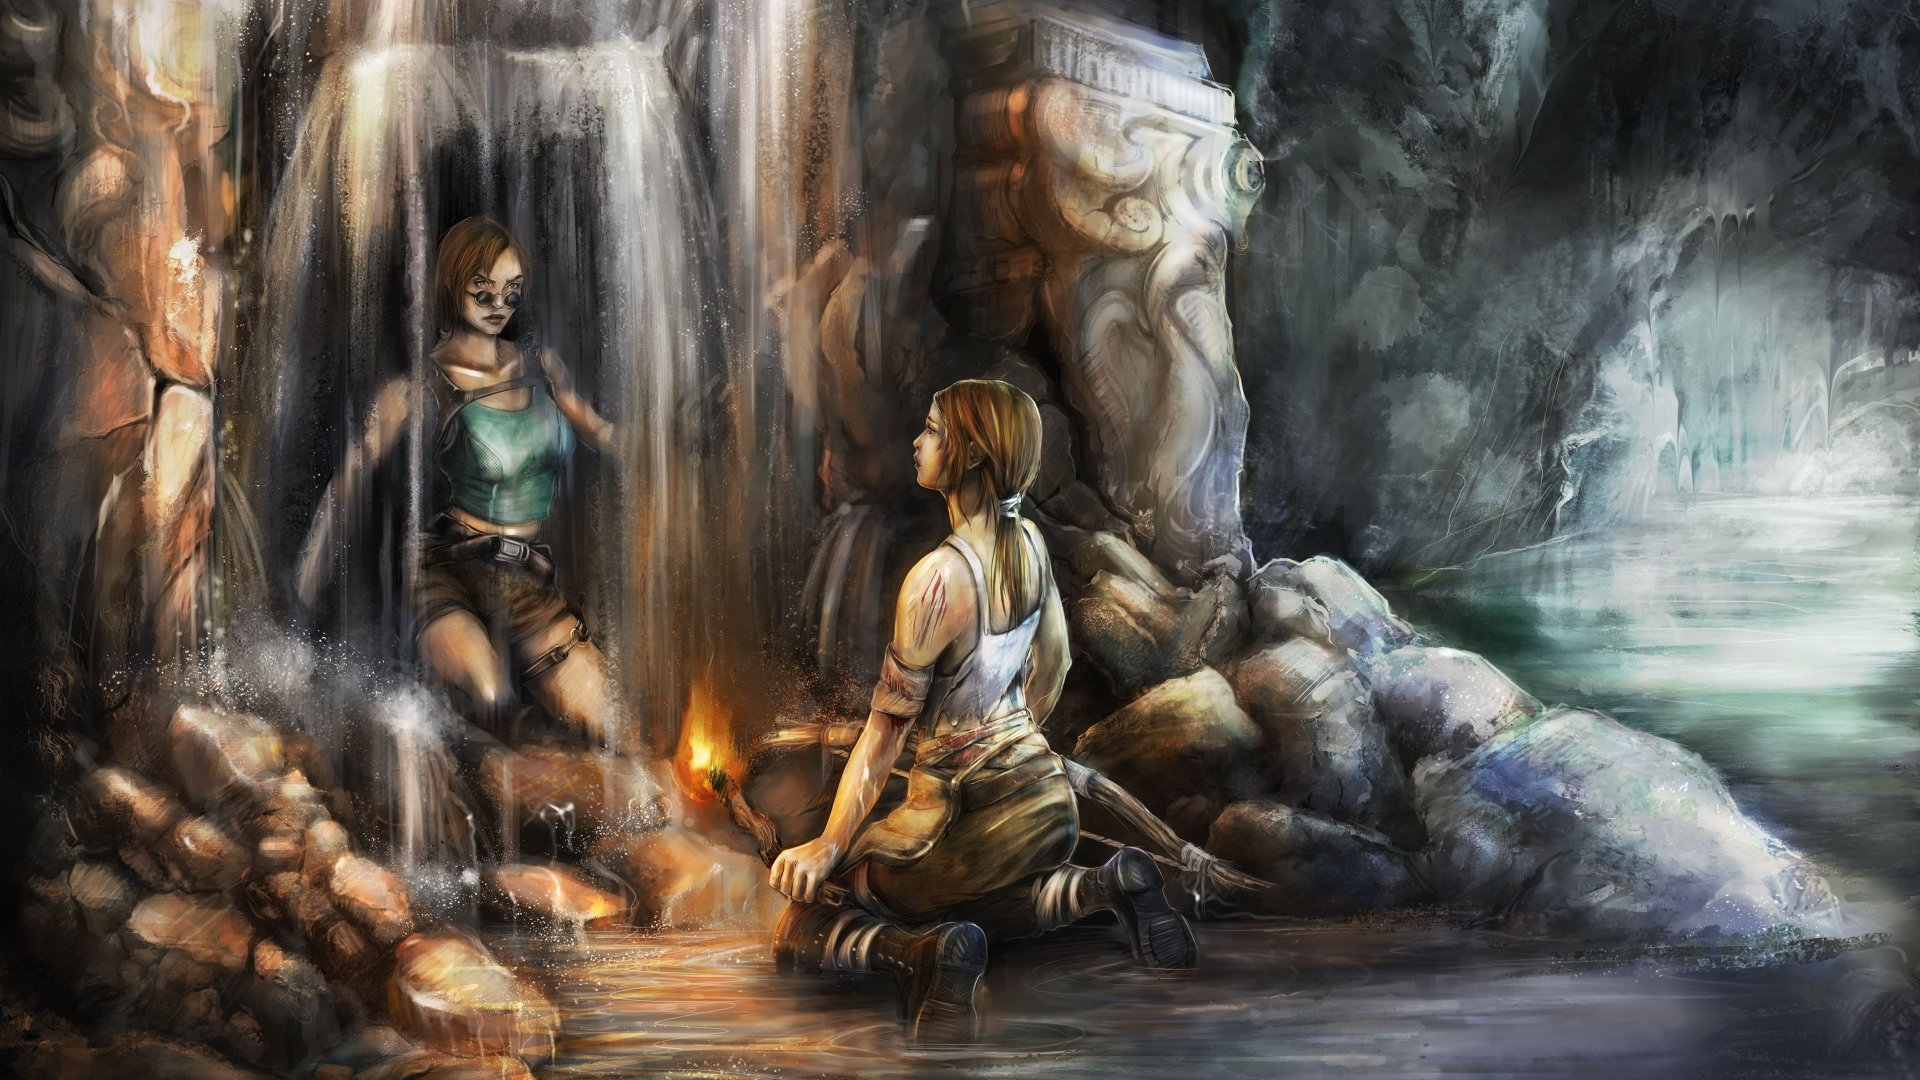 Tomb Raider 4k Ultra HD Papel De Parede And Background